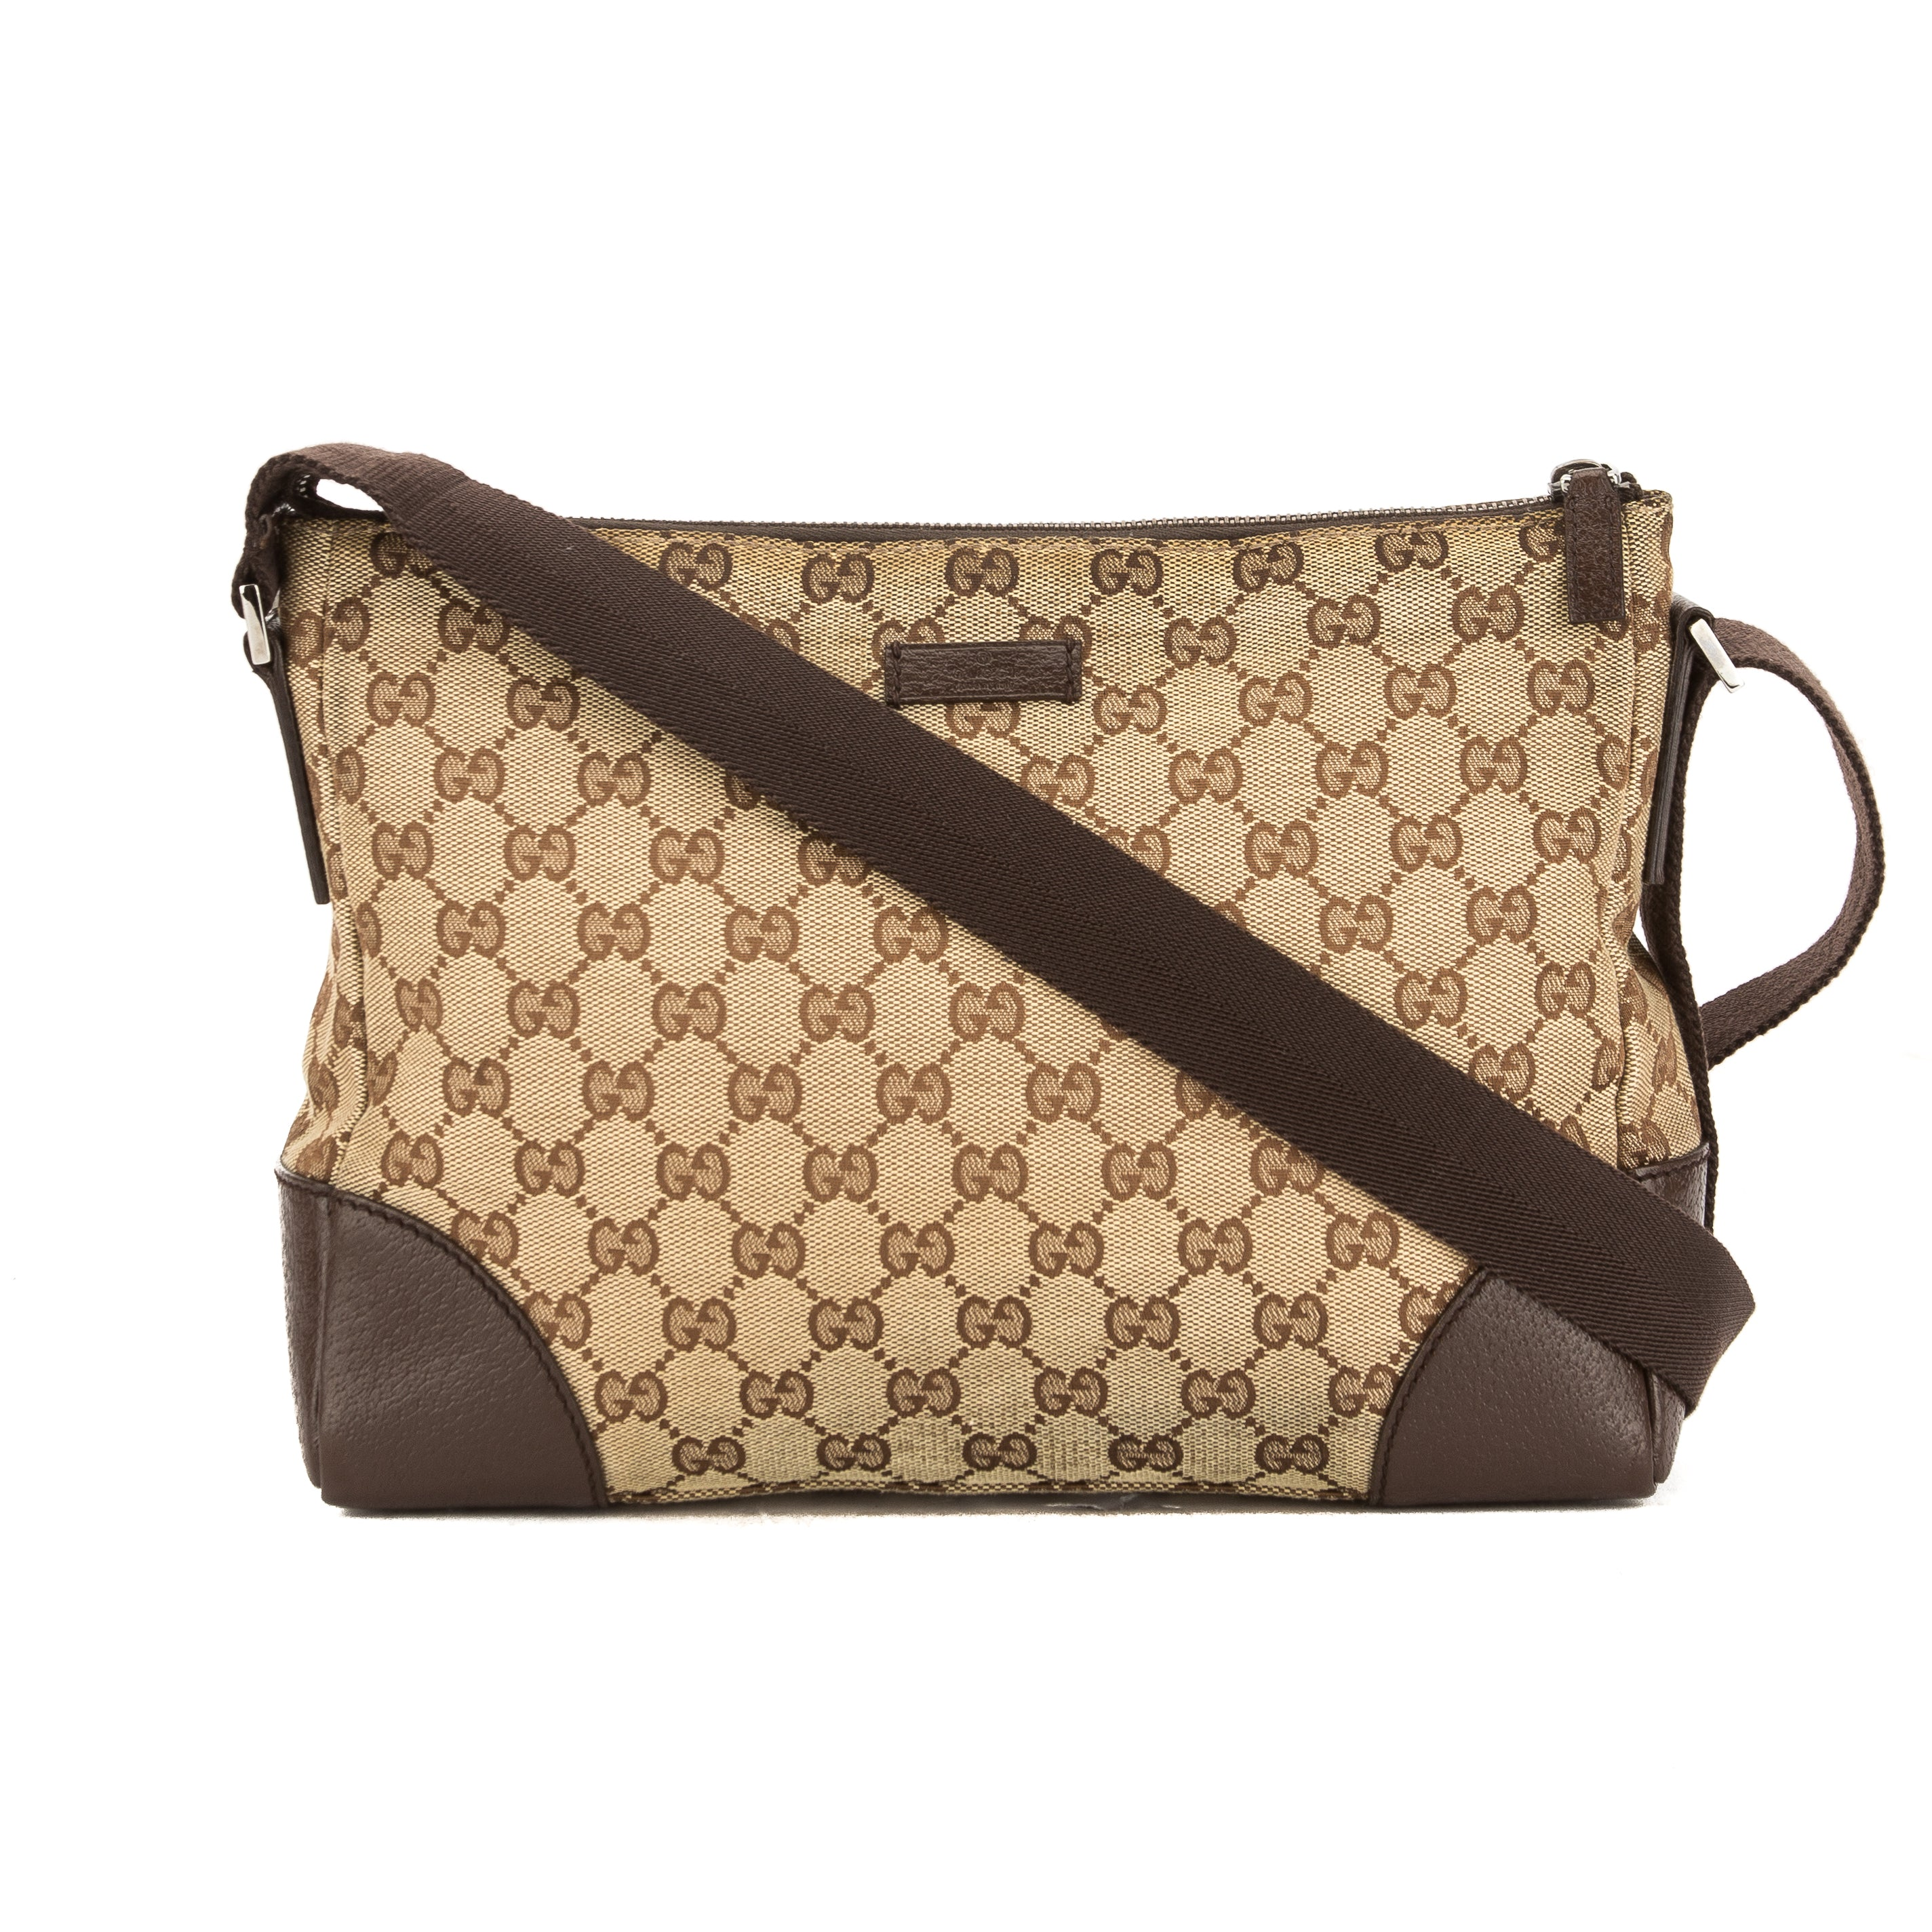 6c2d22196c05 Gucci Brown Leather GG Monogram Canvas Shoulder Bag (Pre Owned ...